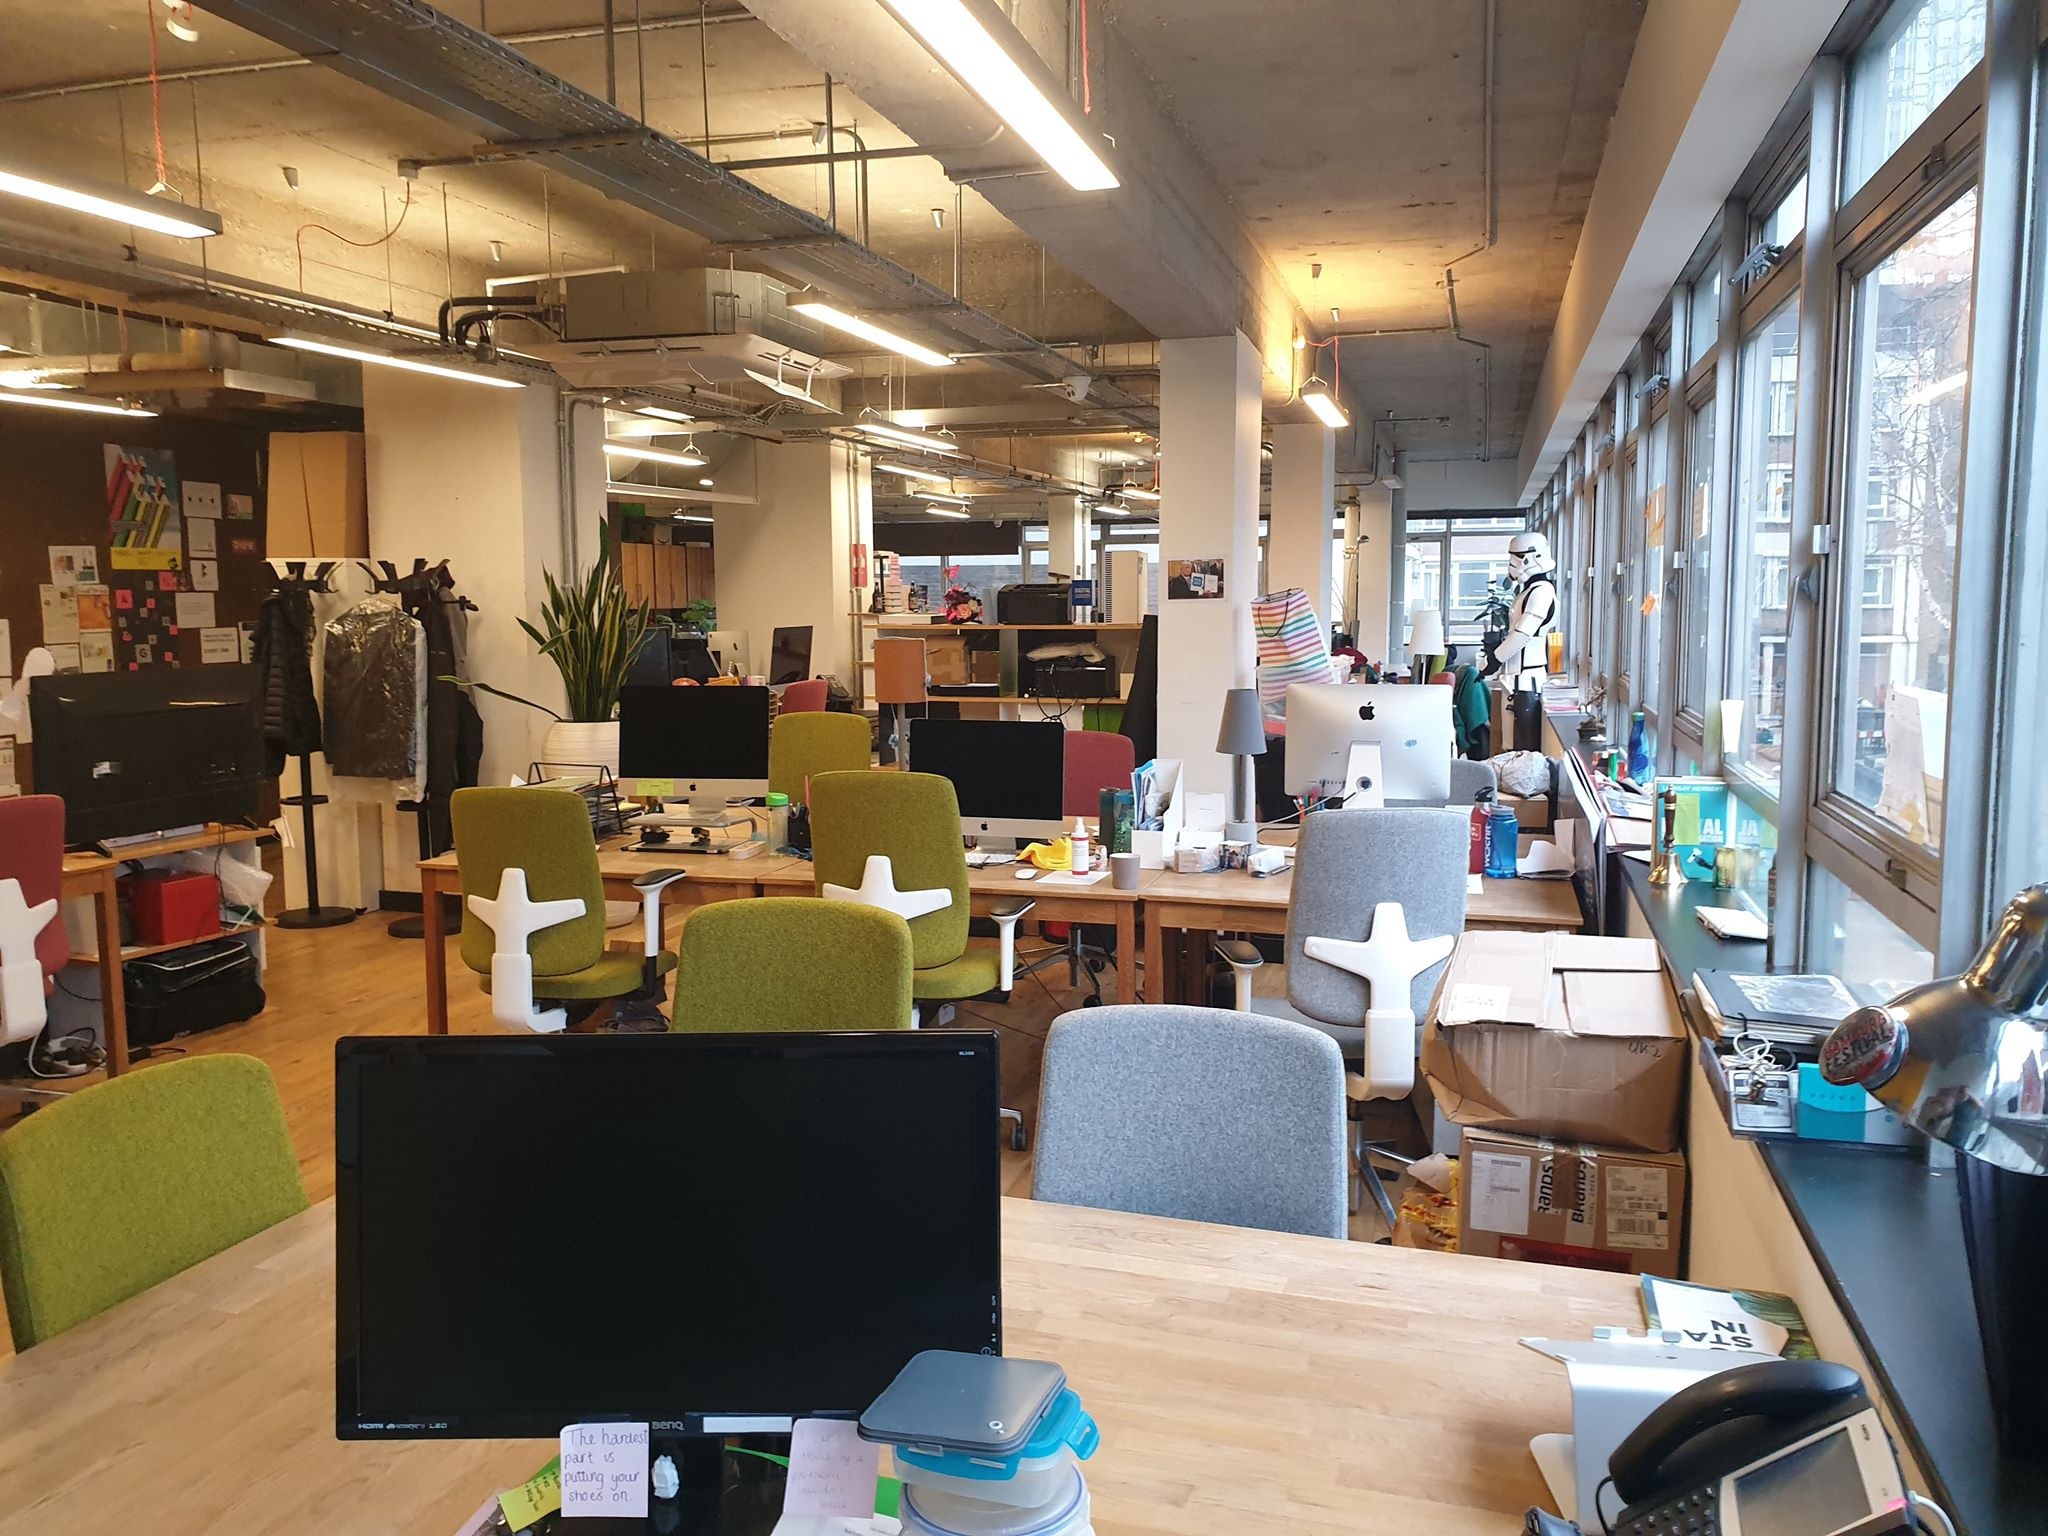 The Trampery Old Street workspace, completely deserted during the coronavirus outbreak